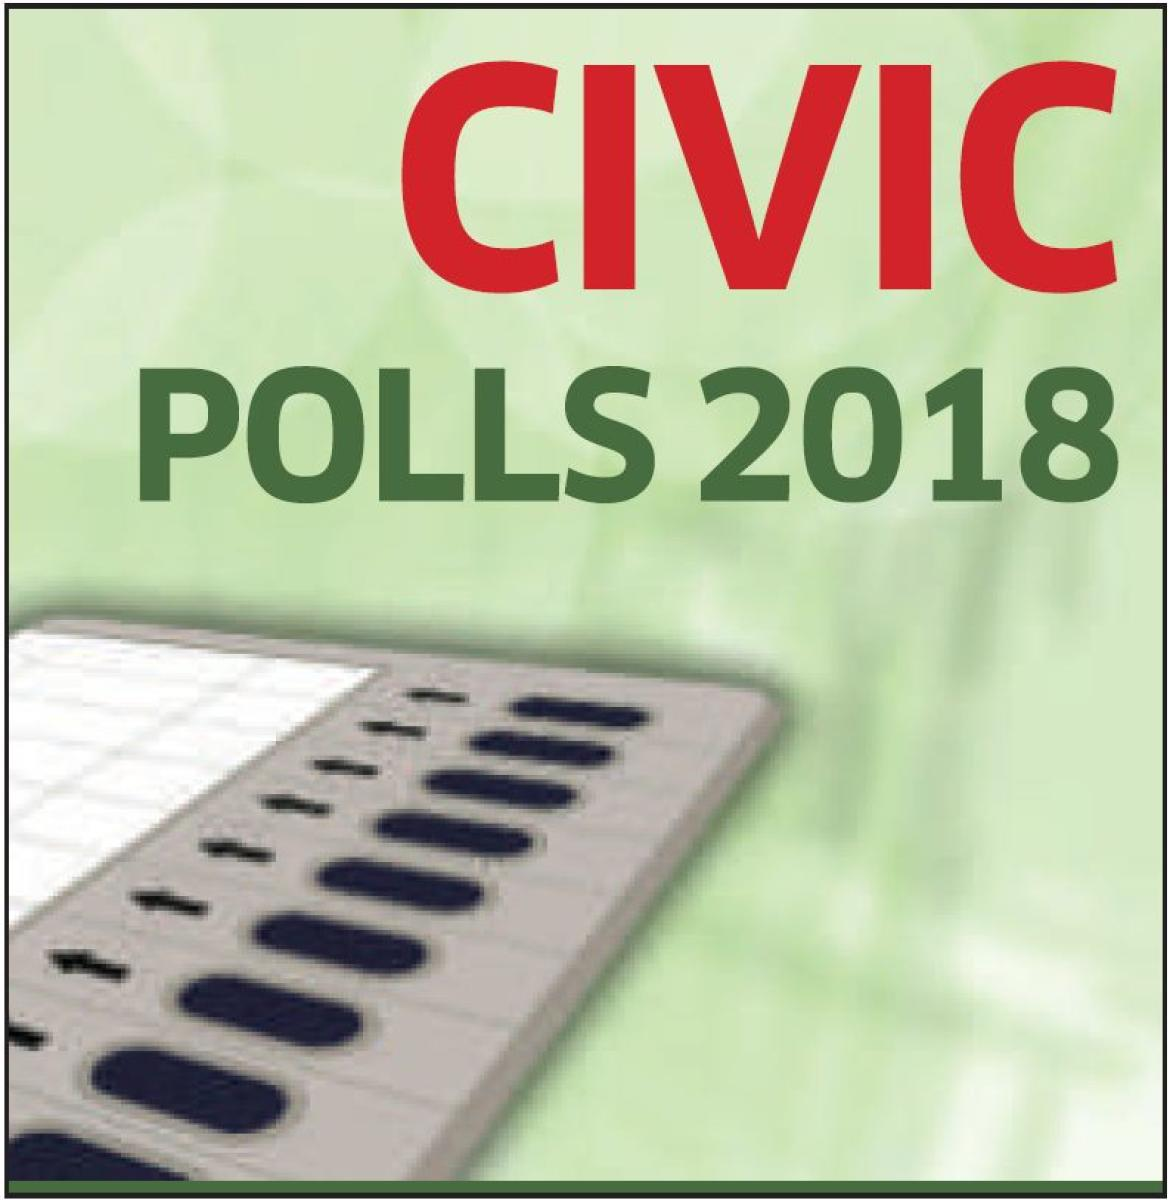 Major political parties in the state, the Congress, the BJP, the JD(S), are seeing the Urban Local Bodies (ULB) polls scheduled to be held on August 31 as a precursor to launch their campaign for the Lok Sabha elections.